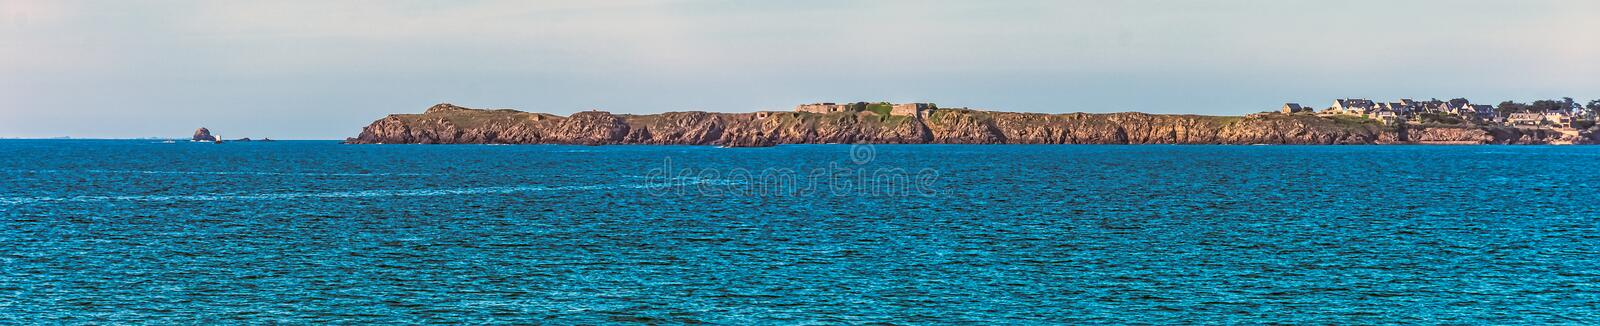 Bailiwick of Jersey known as Isle of Jersey - British island on French coast stock photo